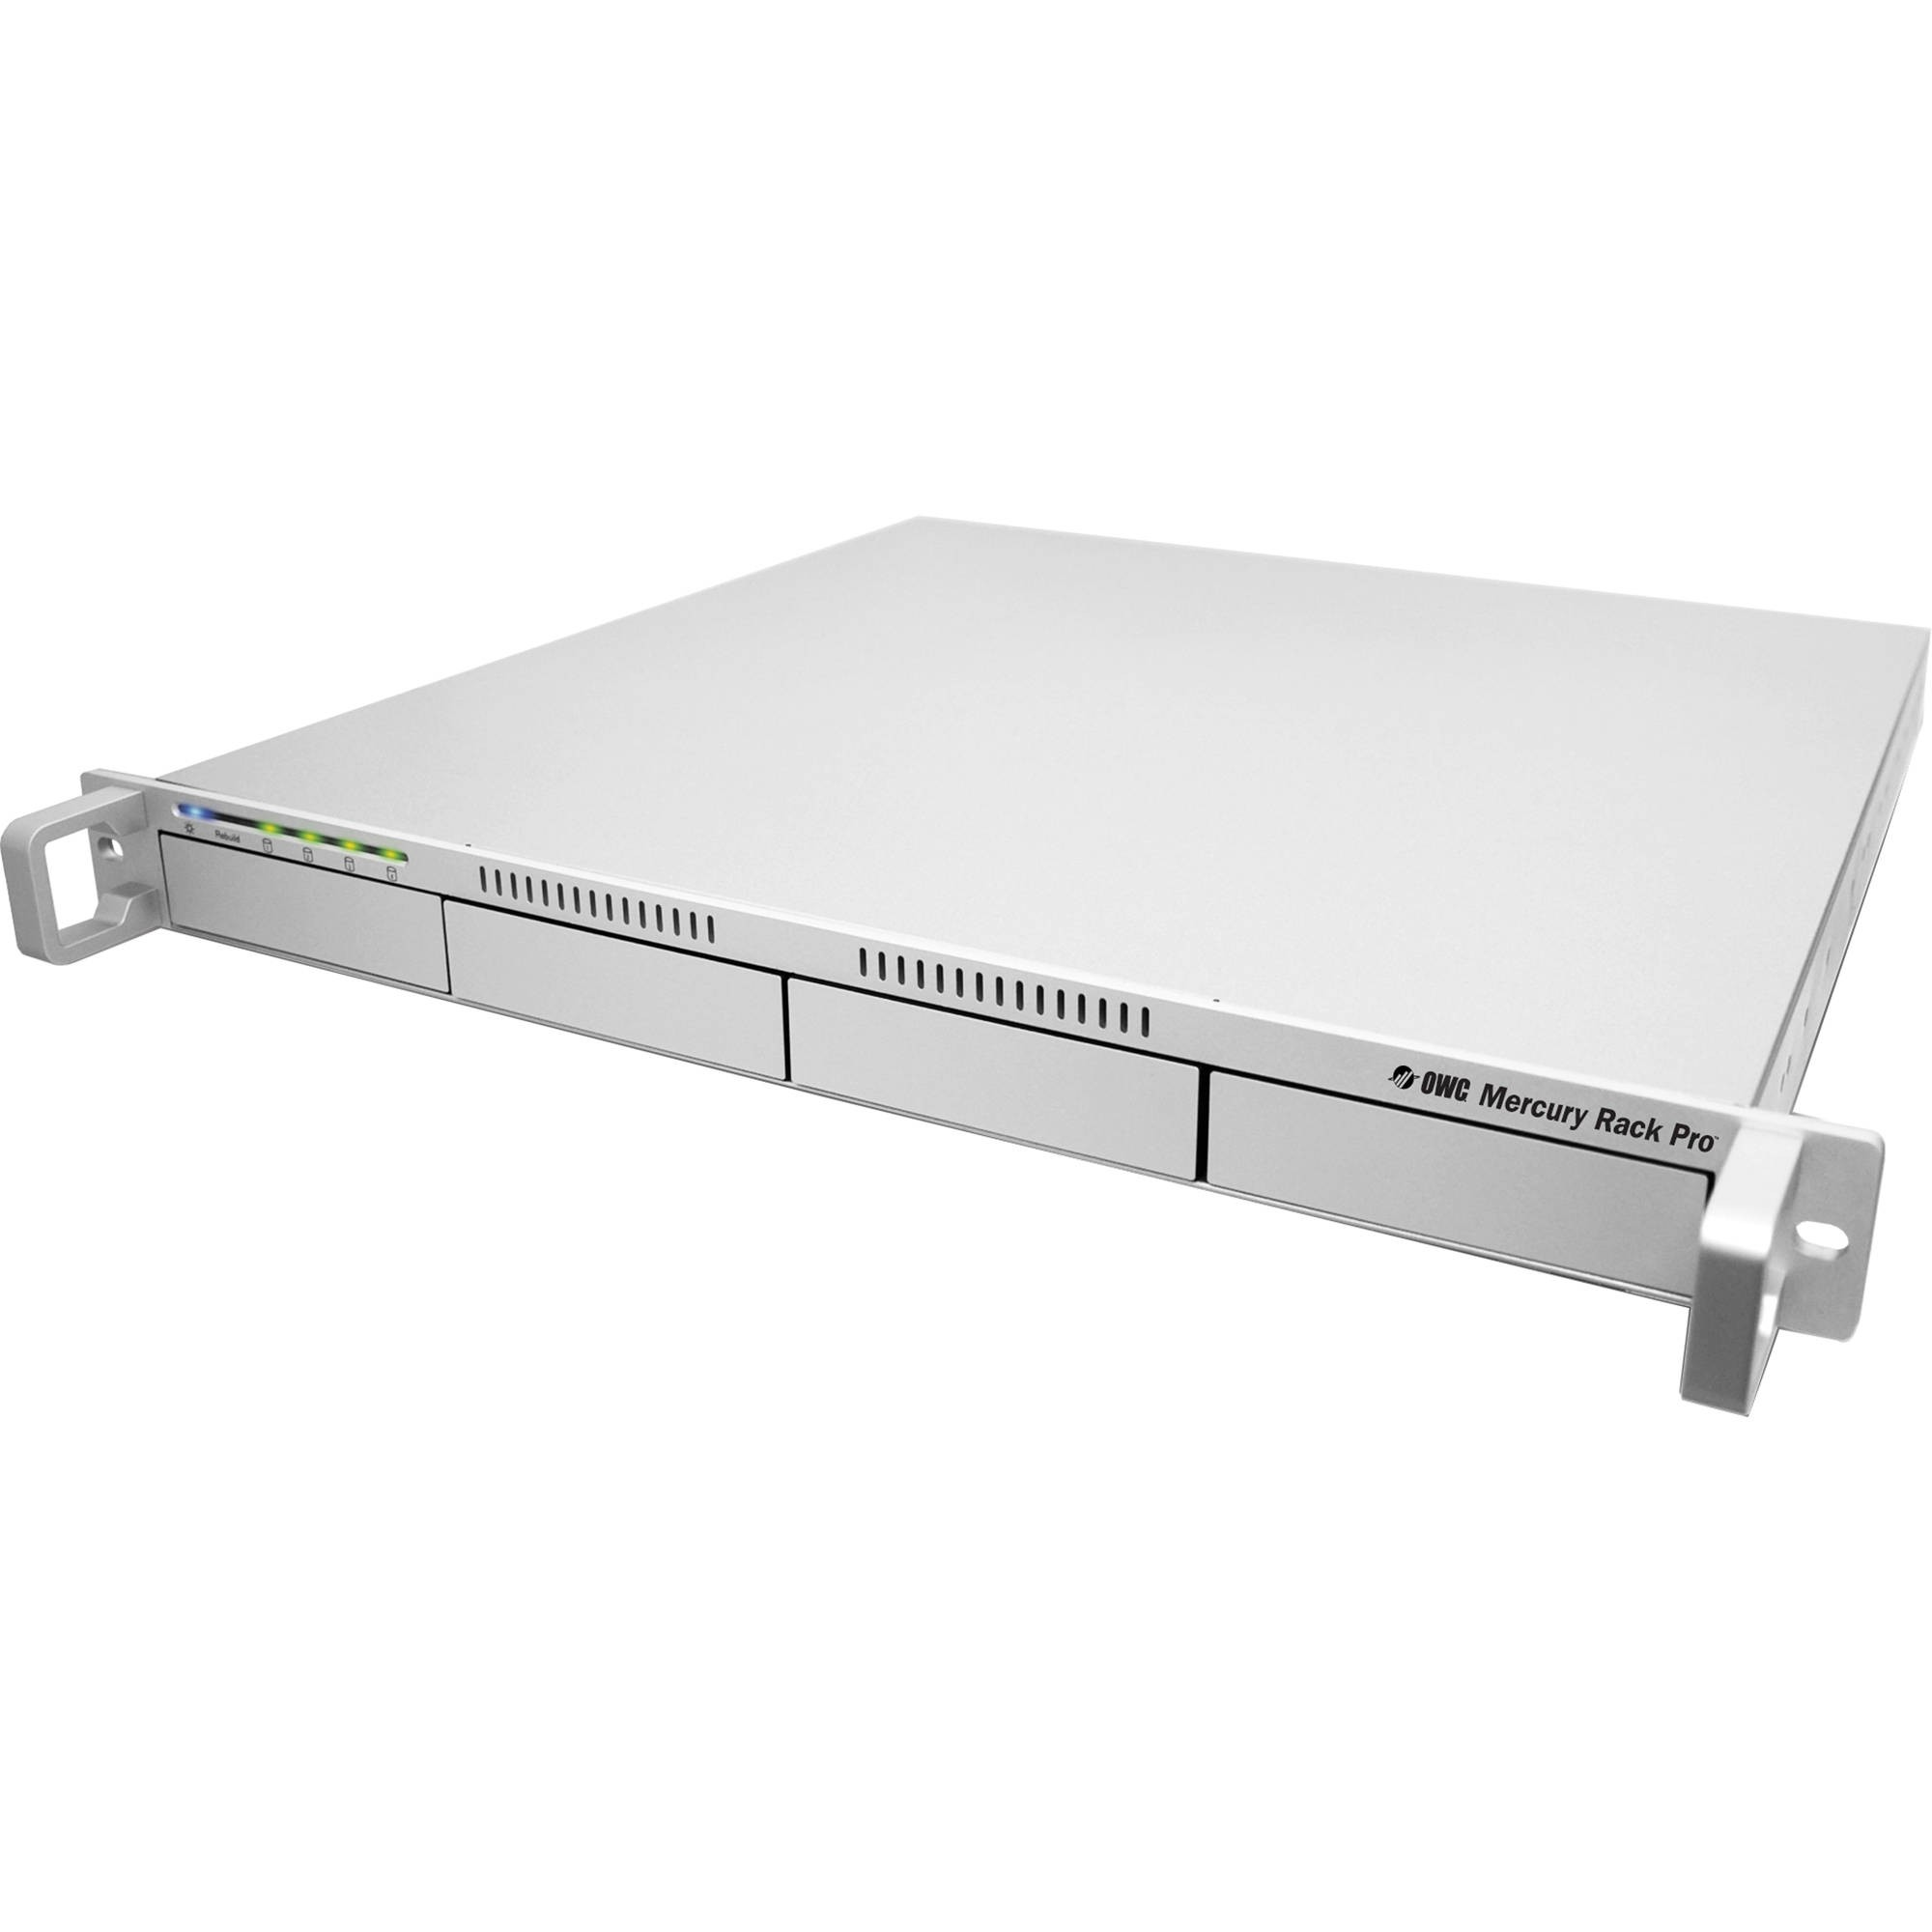 16.0TB (4 x 4.0TB) OWC Mercury Rack Pro 4 Bay SAS 1U Rackmount Solution - Enterprise Class, OWMRPMSS4B16.0E